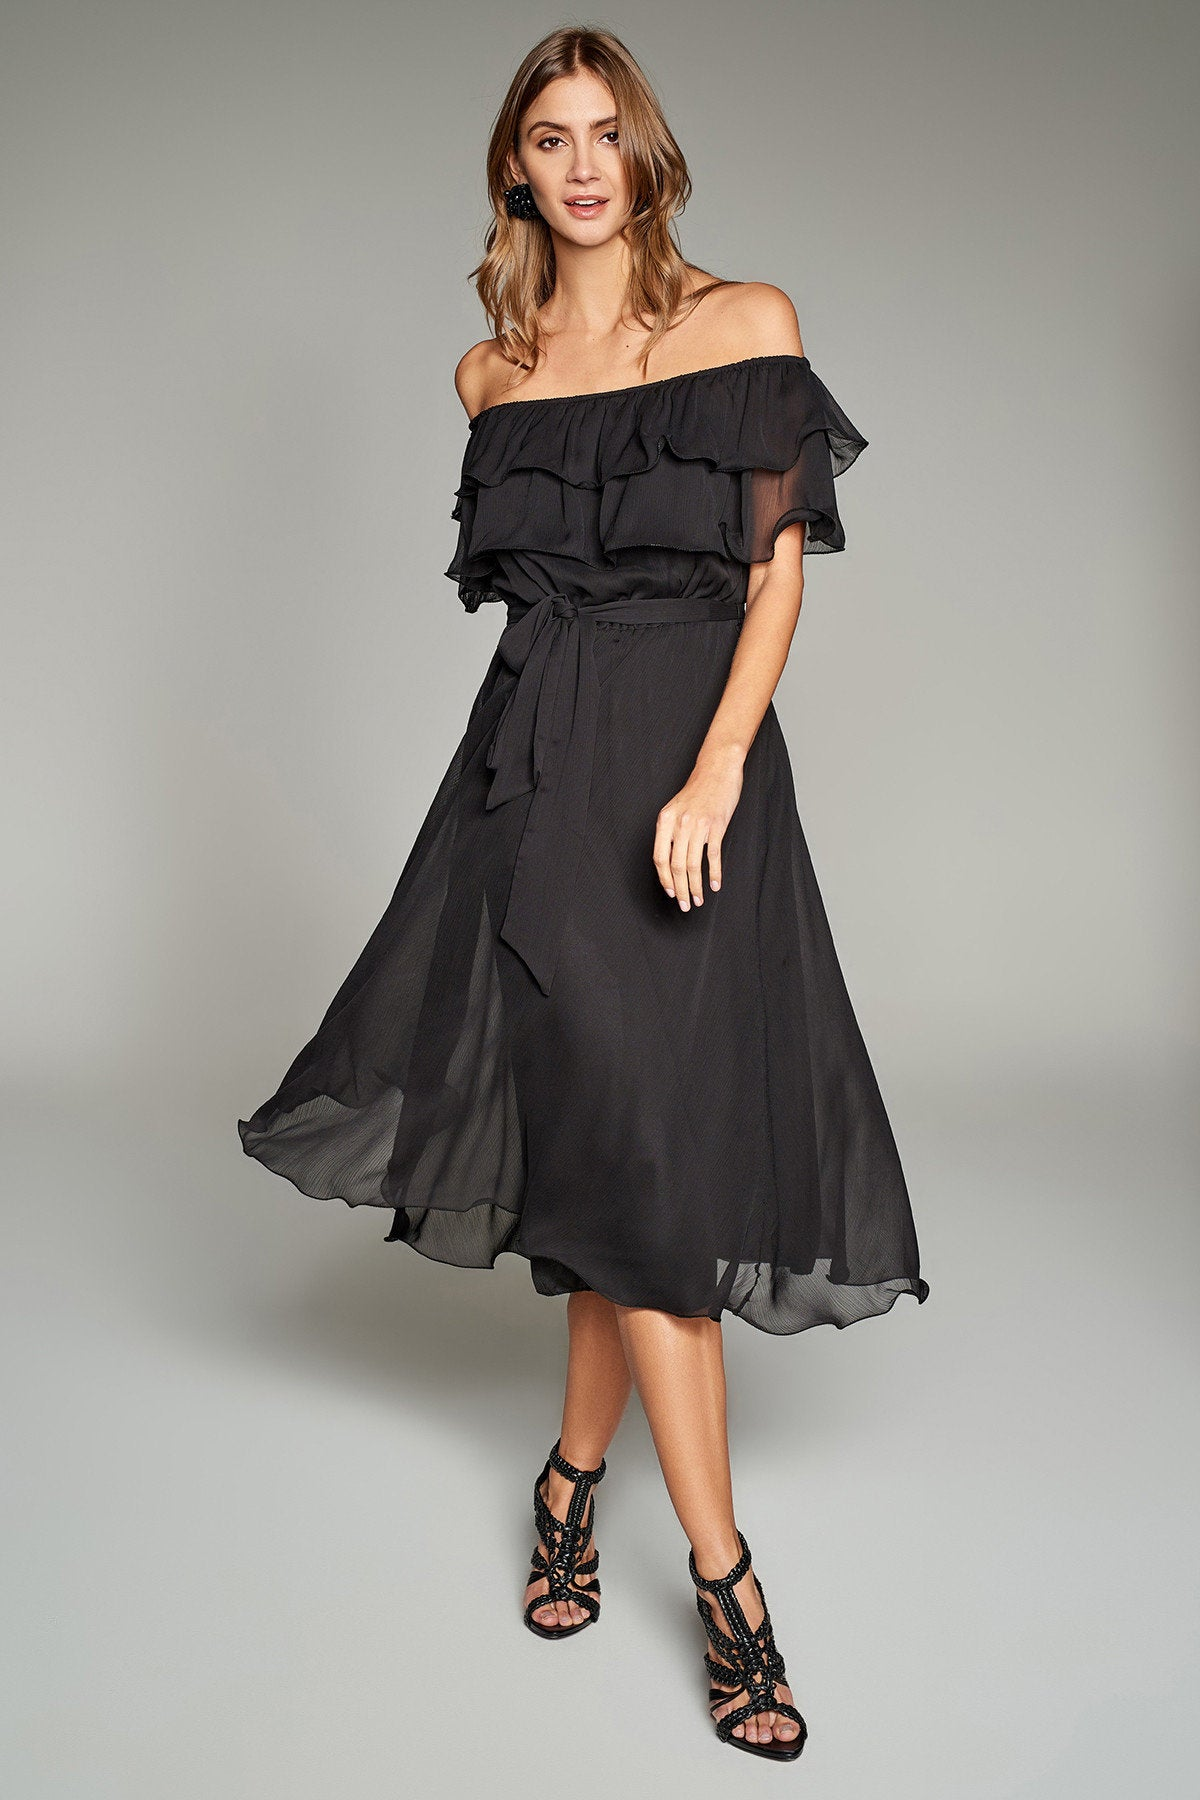 ffb4b0be4046 ... 4610137 Black Off-shoulder Collar Dress ...